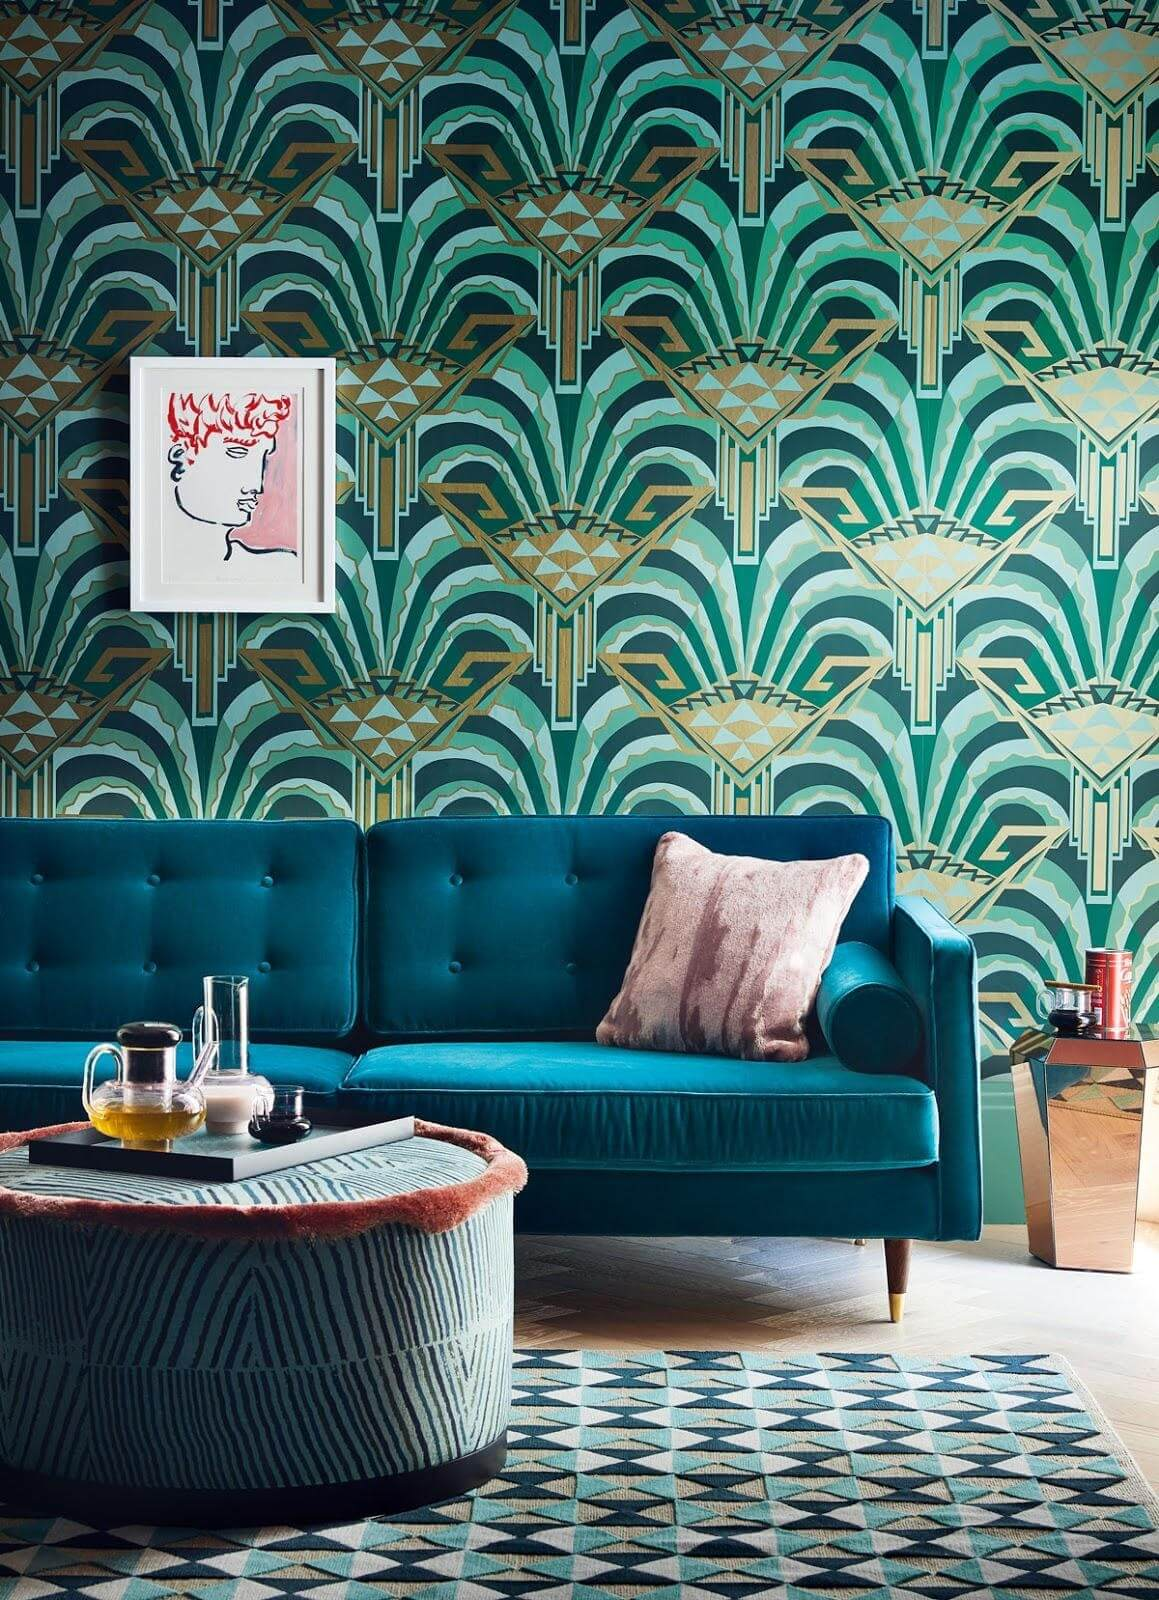 blue and green patterned themed living room